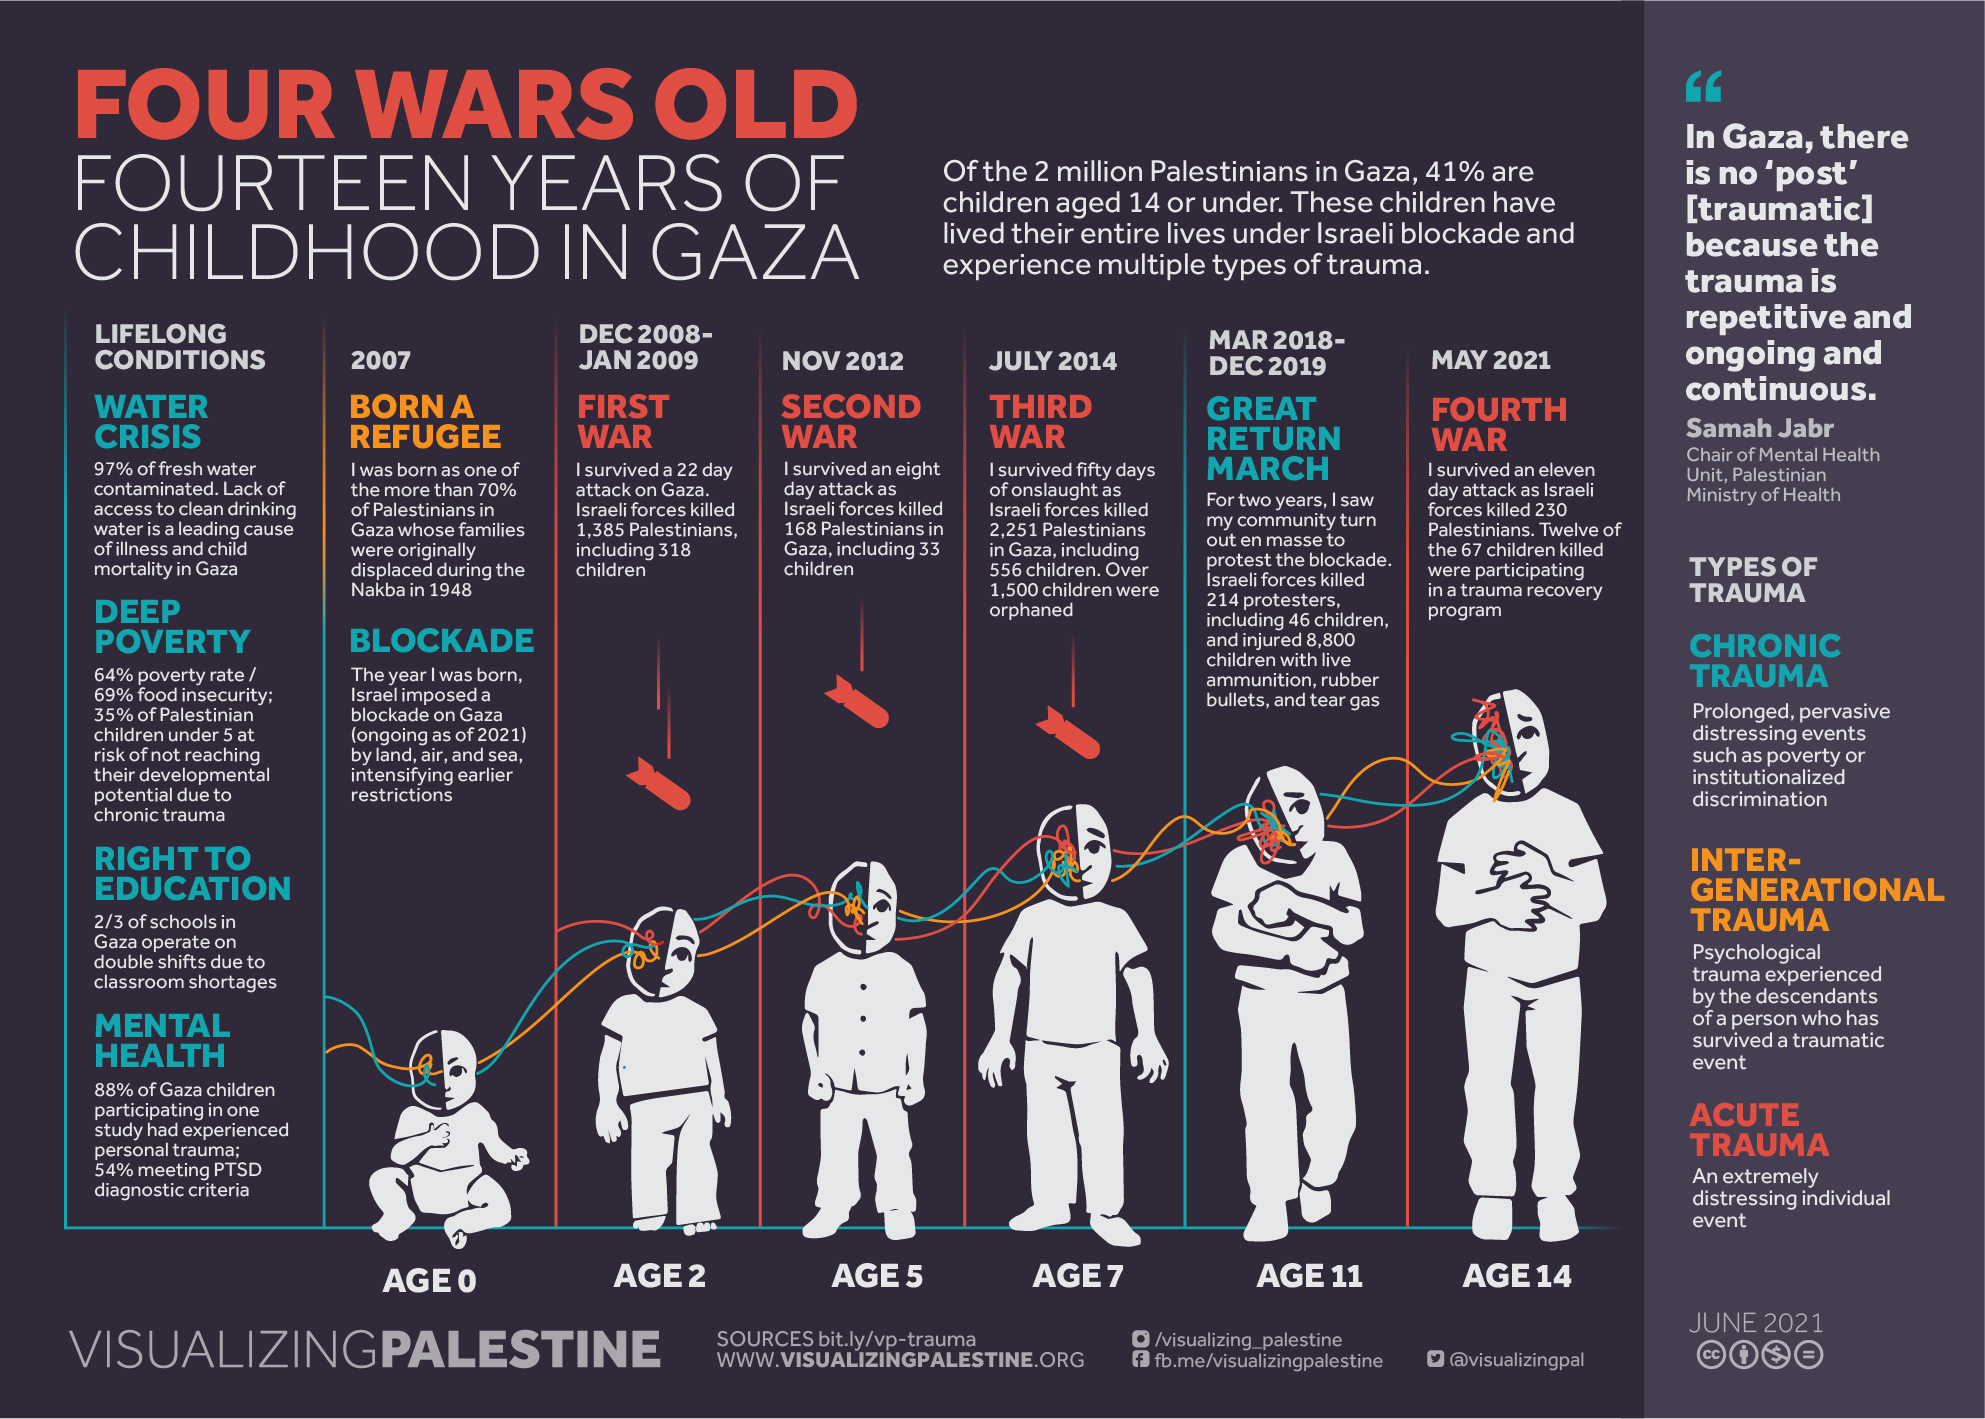 Four Wars Old: Fourteen Years of Childhood in Gaza